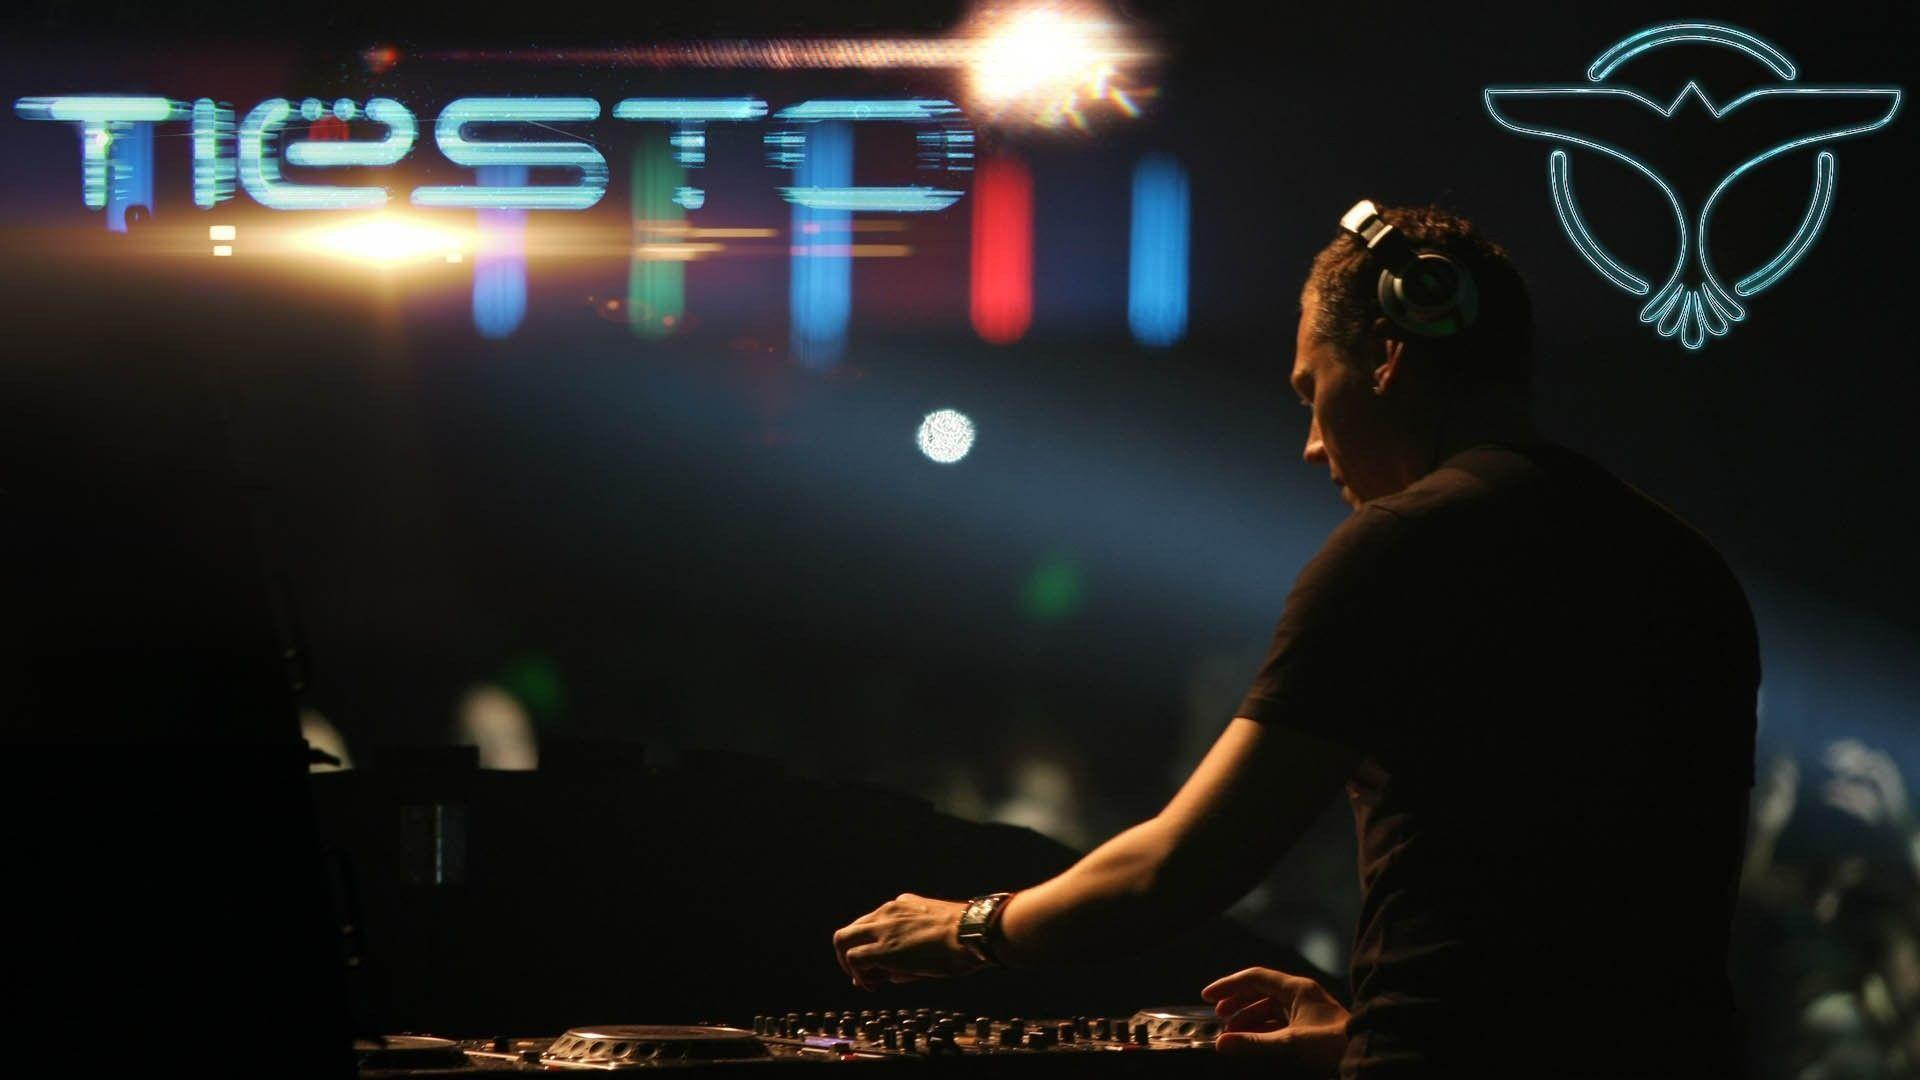 DJ Tiesto Wallpapers 2015 1920x1080